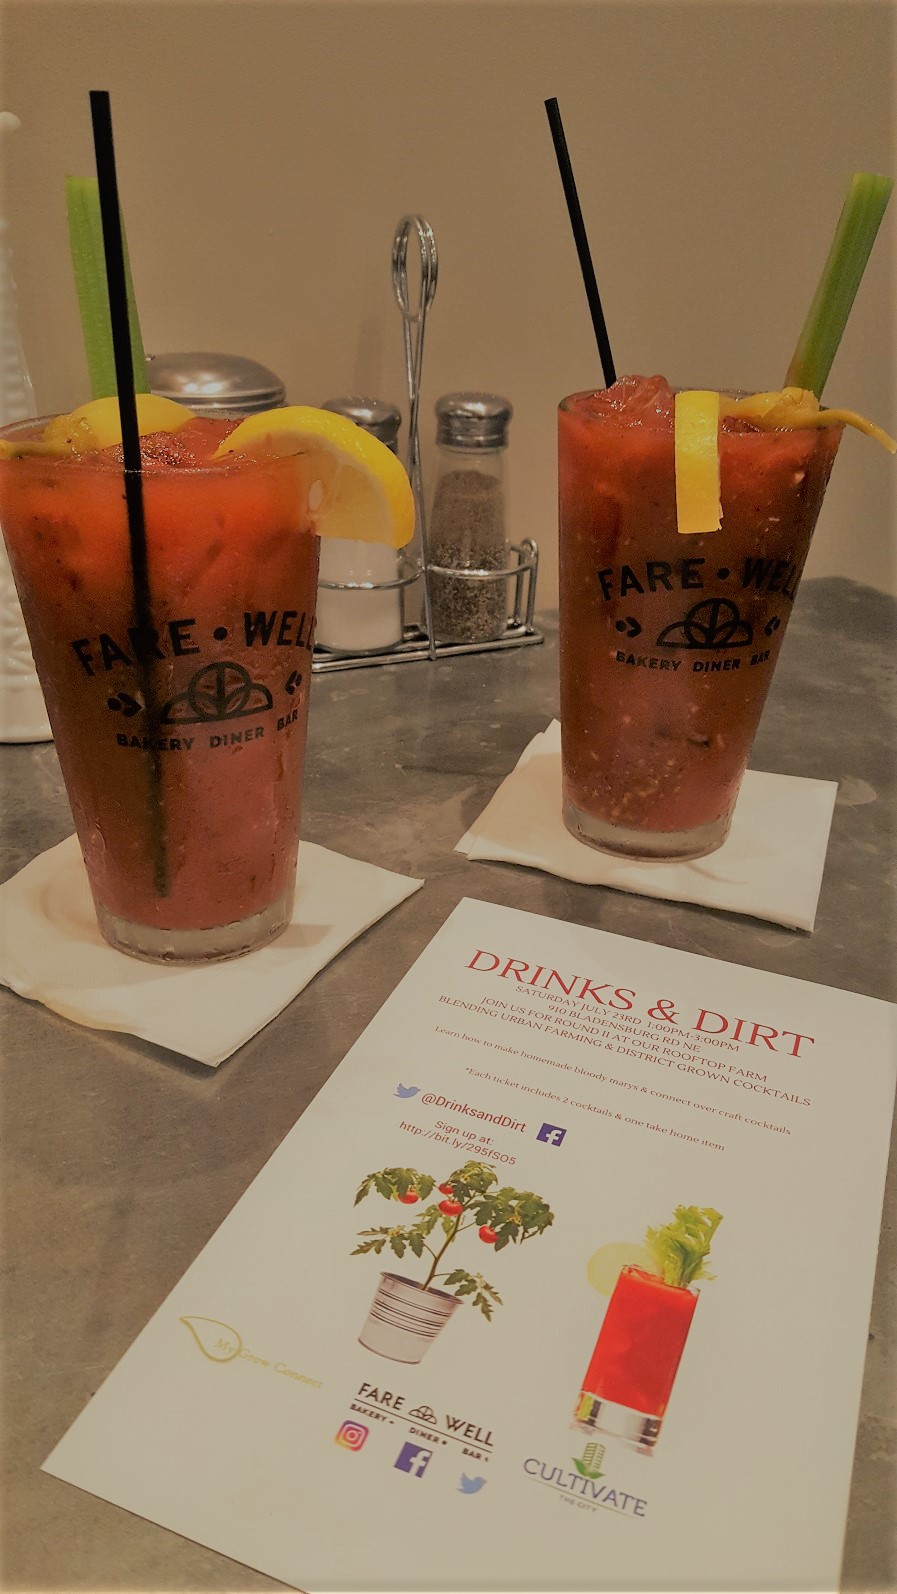 Drinks and Dirt - Bloody Mary Edition